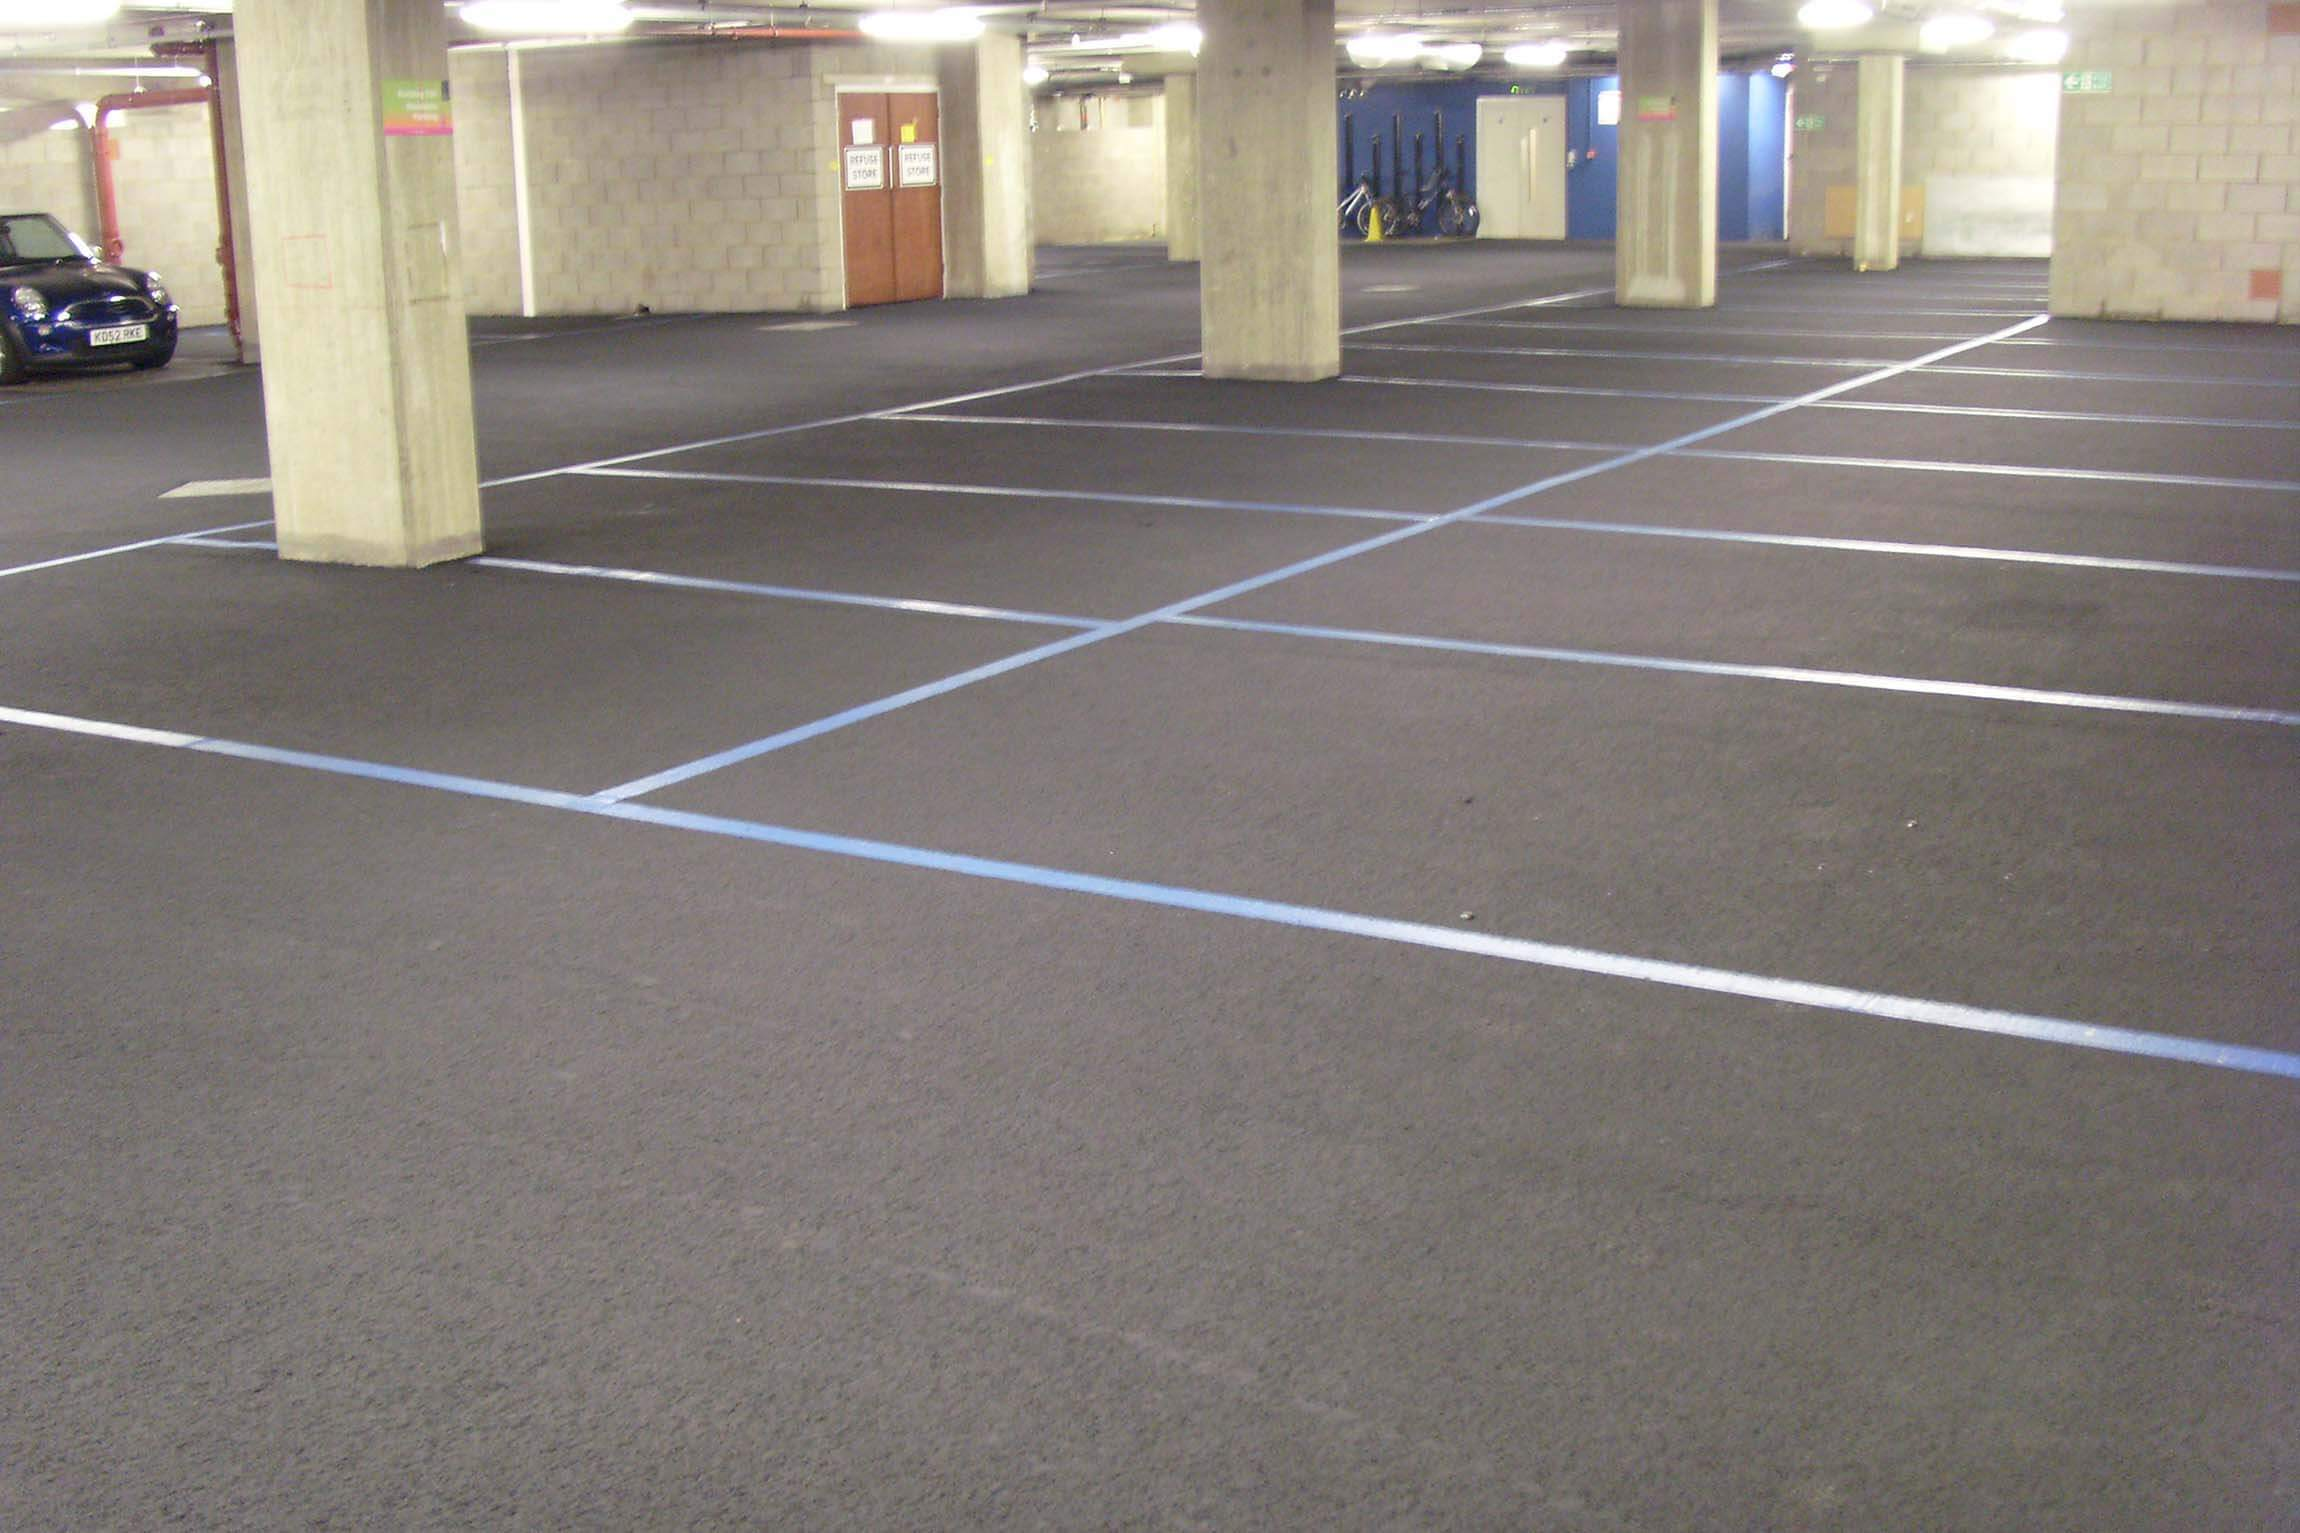 Tarmac car park cleaned & restored perfectly. LS25 area.